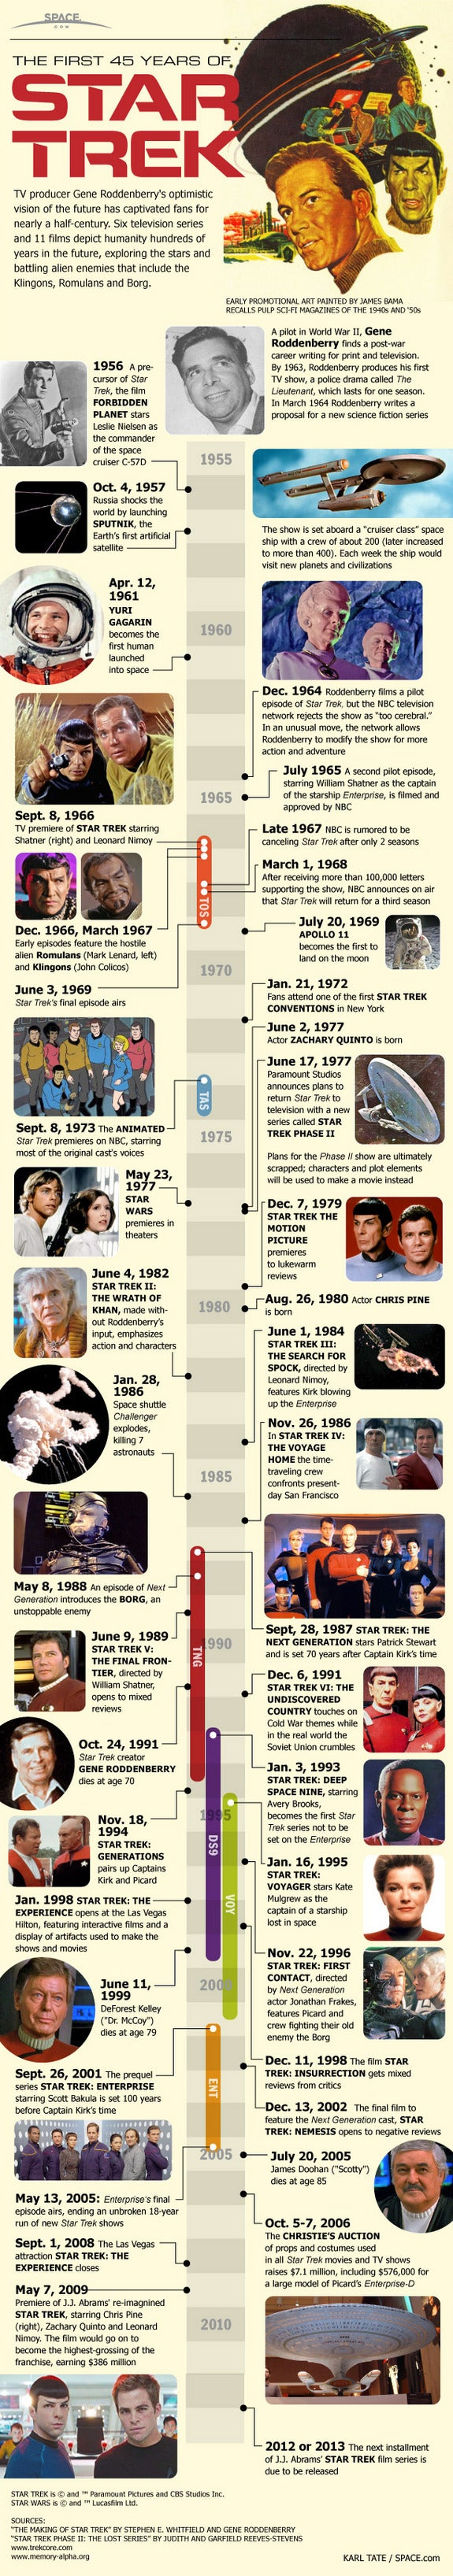 Relive 45 years of Star Trek in one handy timeline